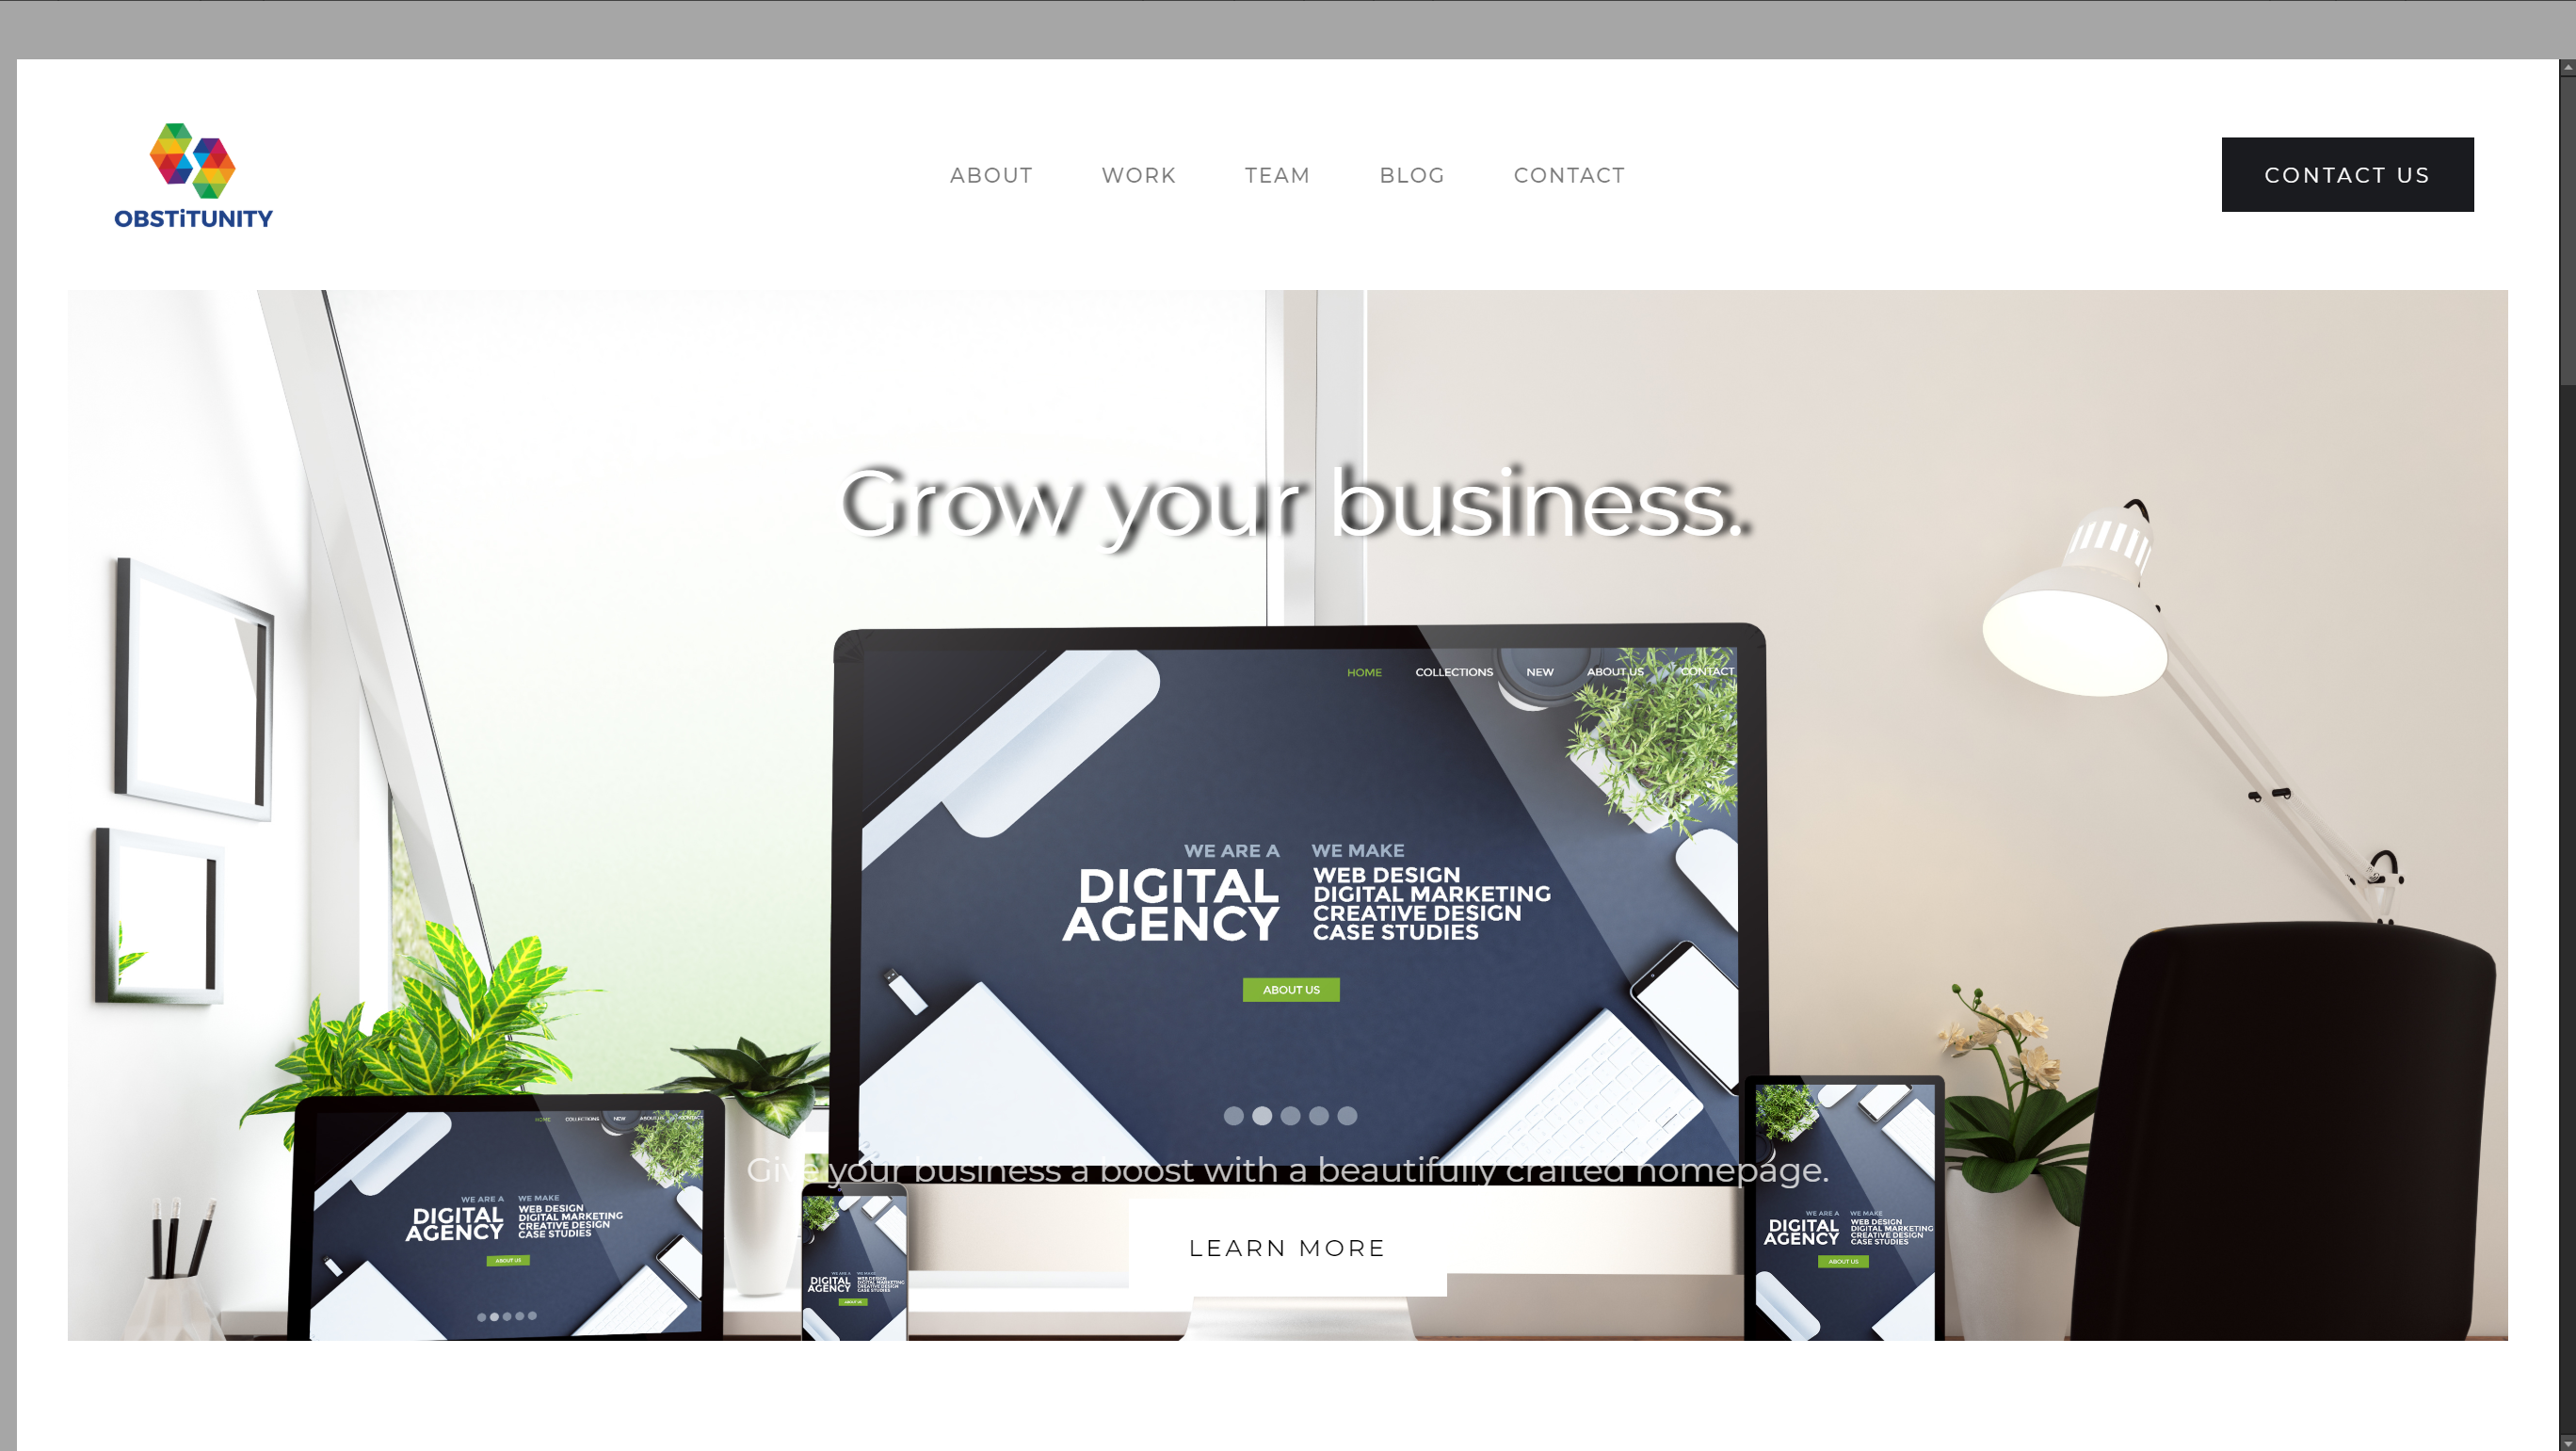 new website home page.